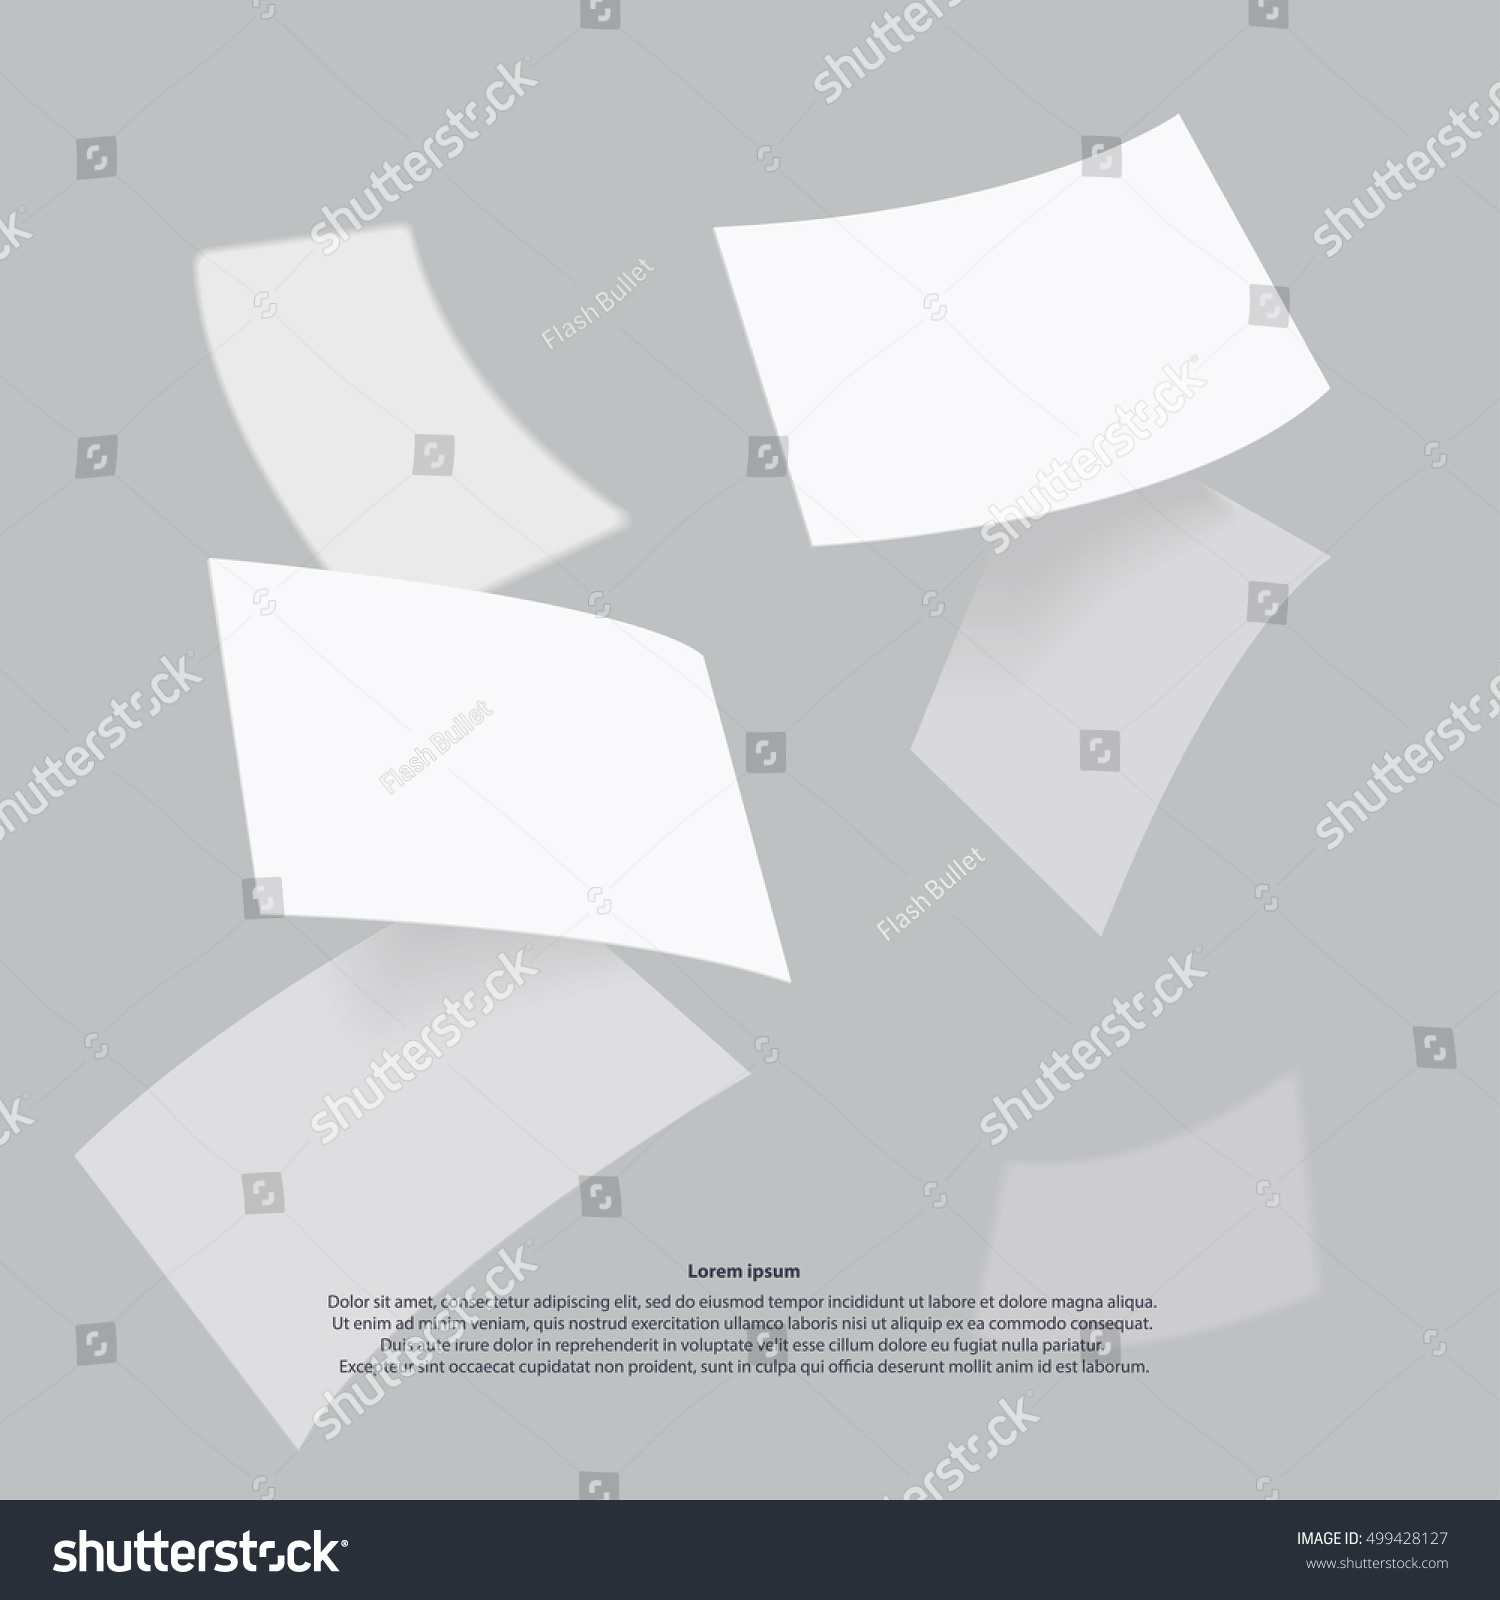 Falling Realistic Business Cards Template Vector Stock Vector HD ...